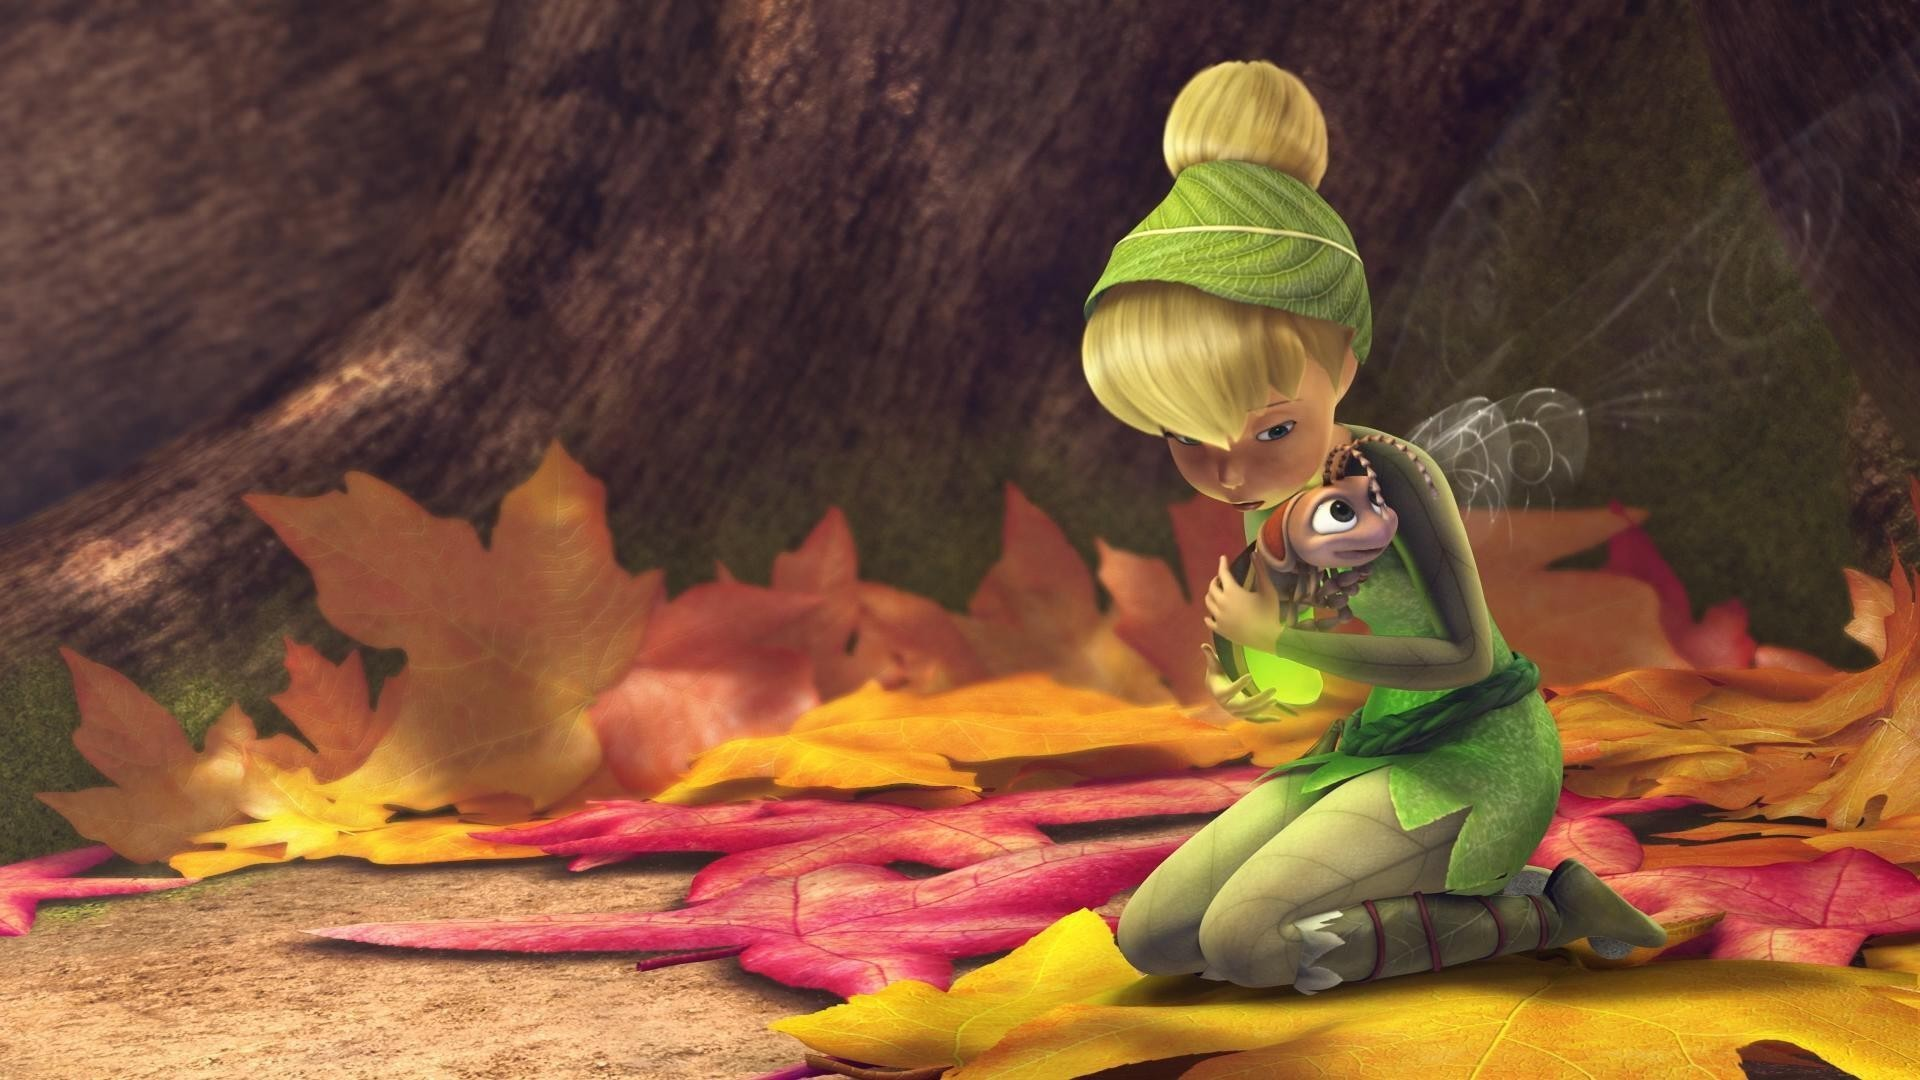 Res: 1920x1080, Tinker Bell and the Lost Treasure Wallpapers 3 - 1920 X 1080